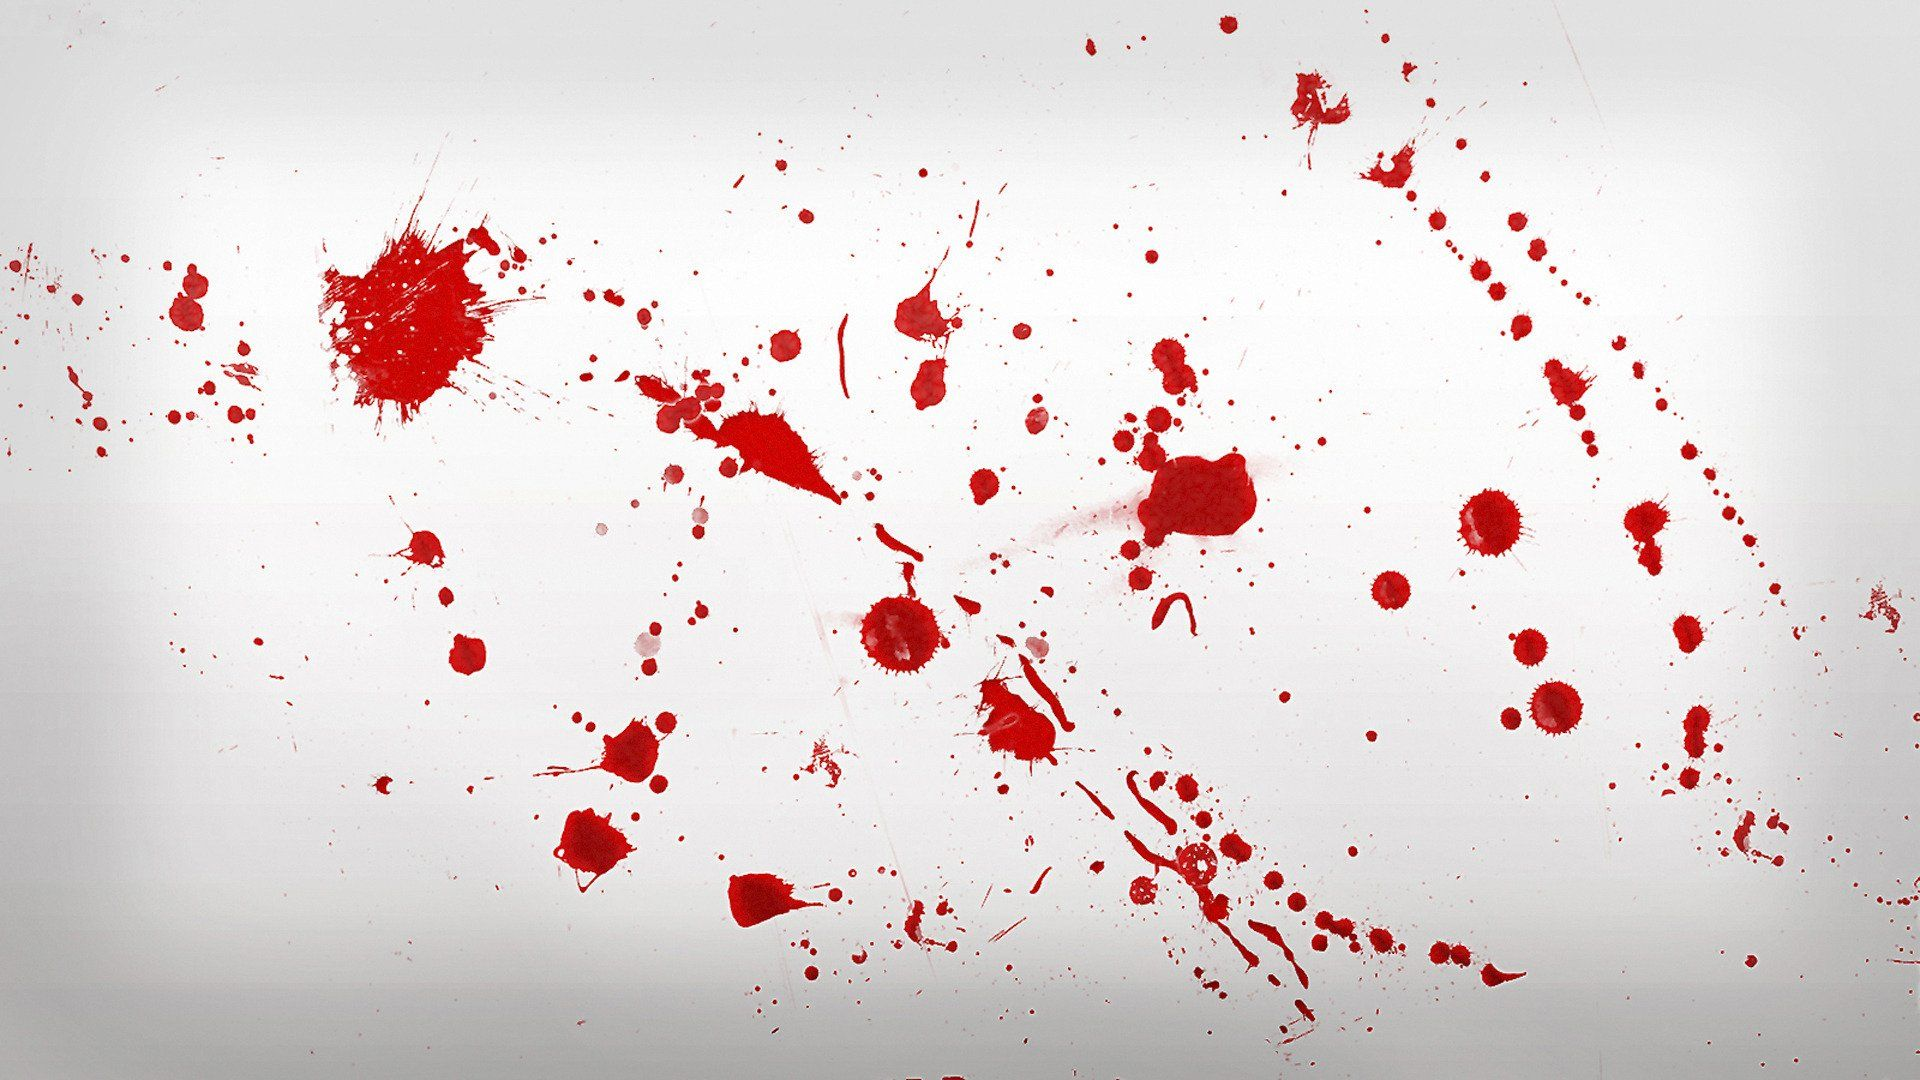 hight resolution of blood spatter